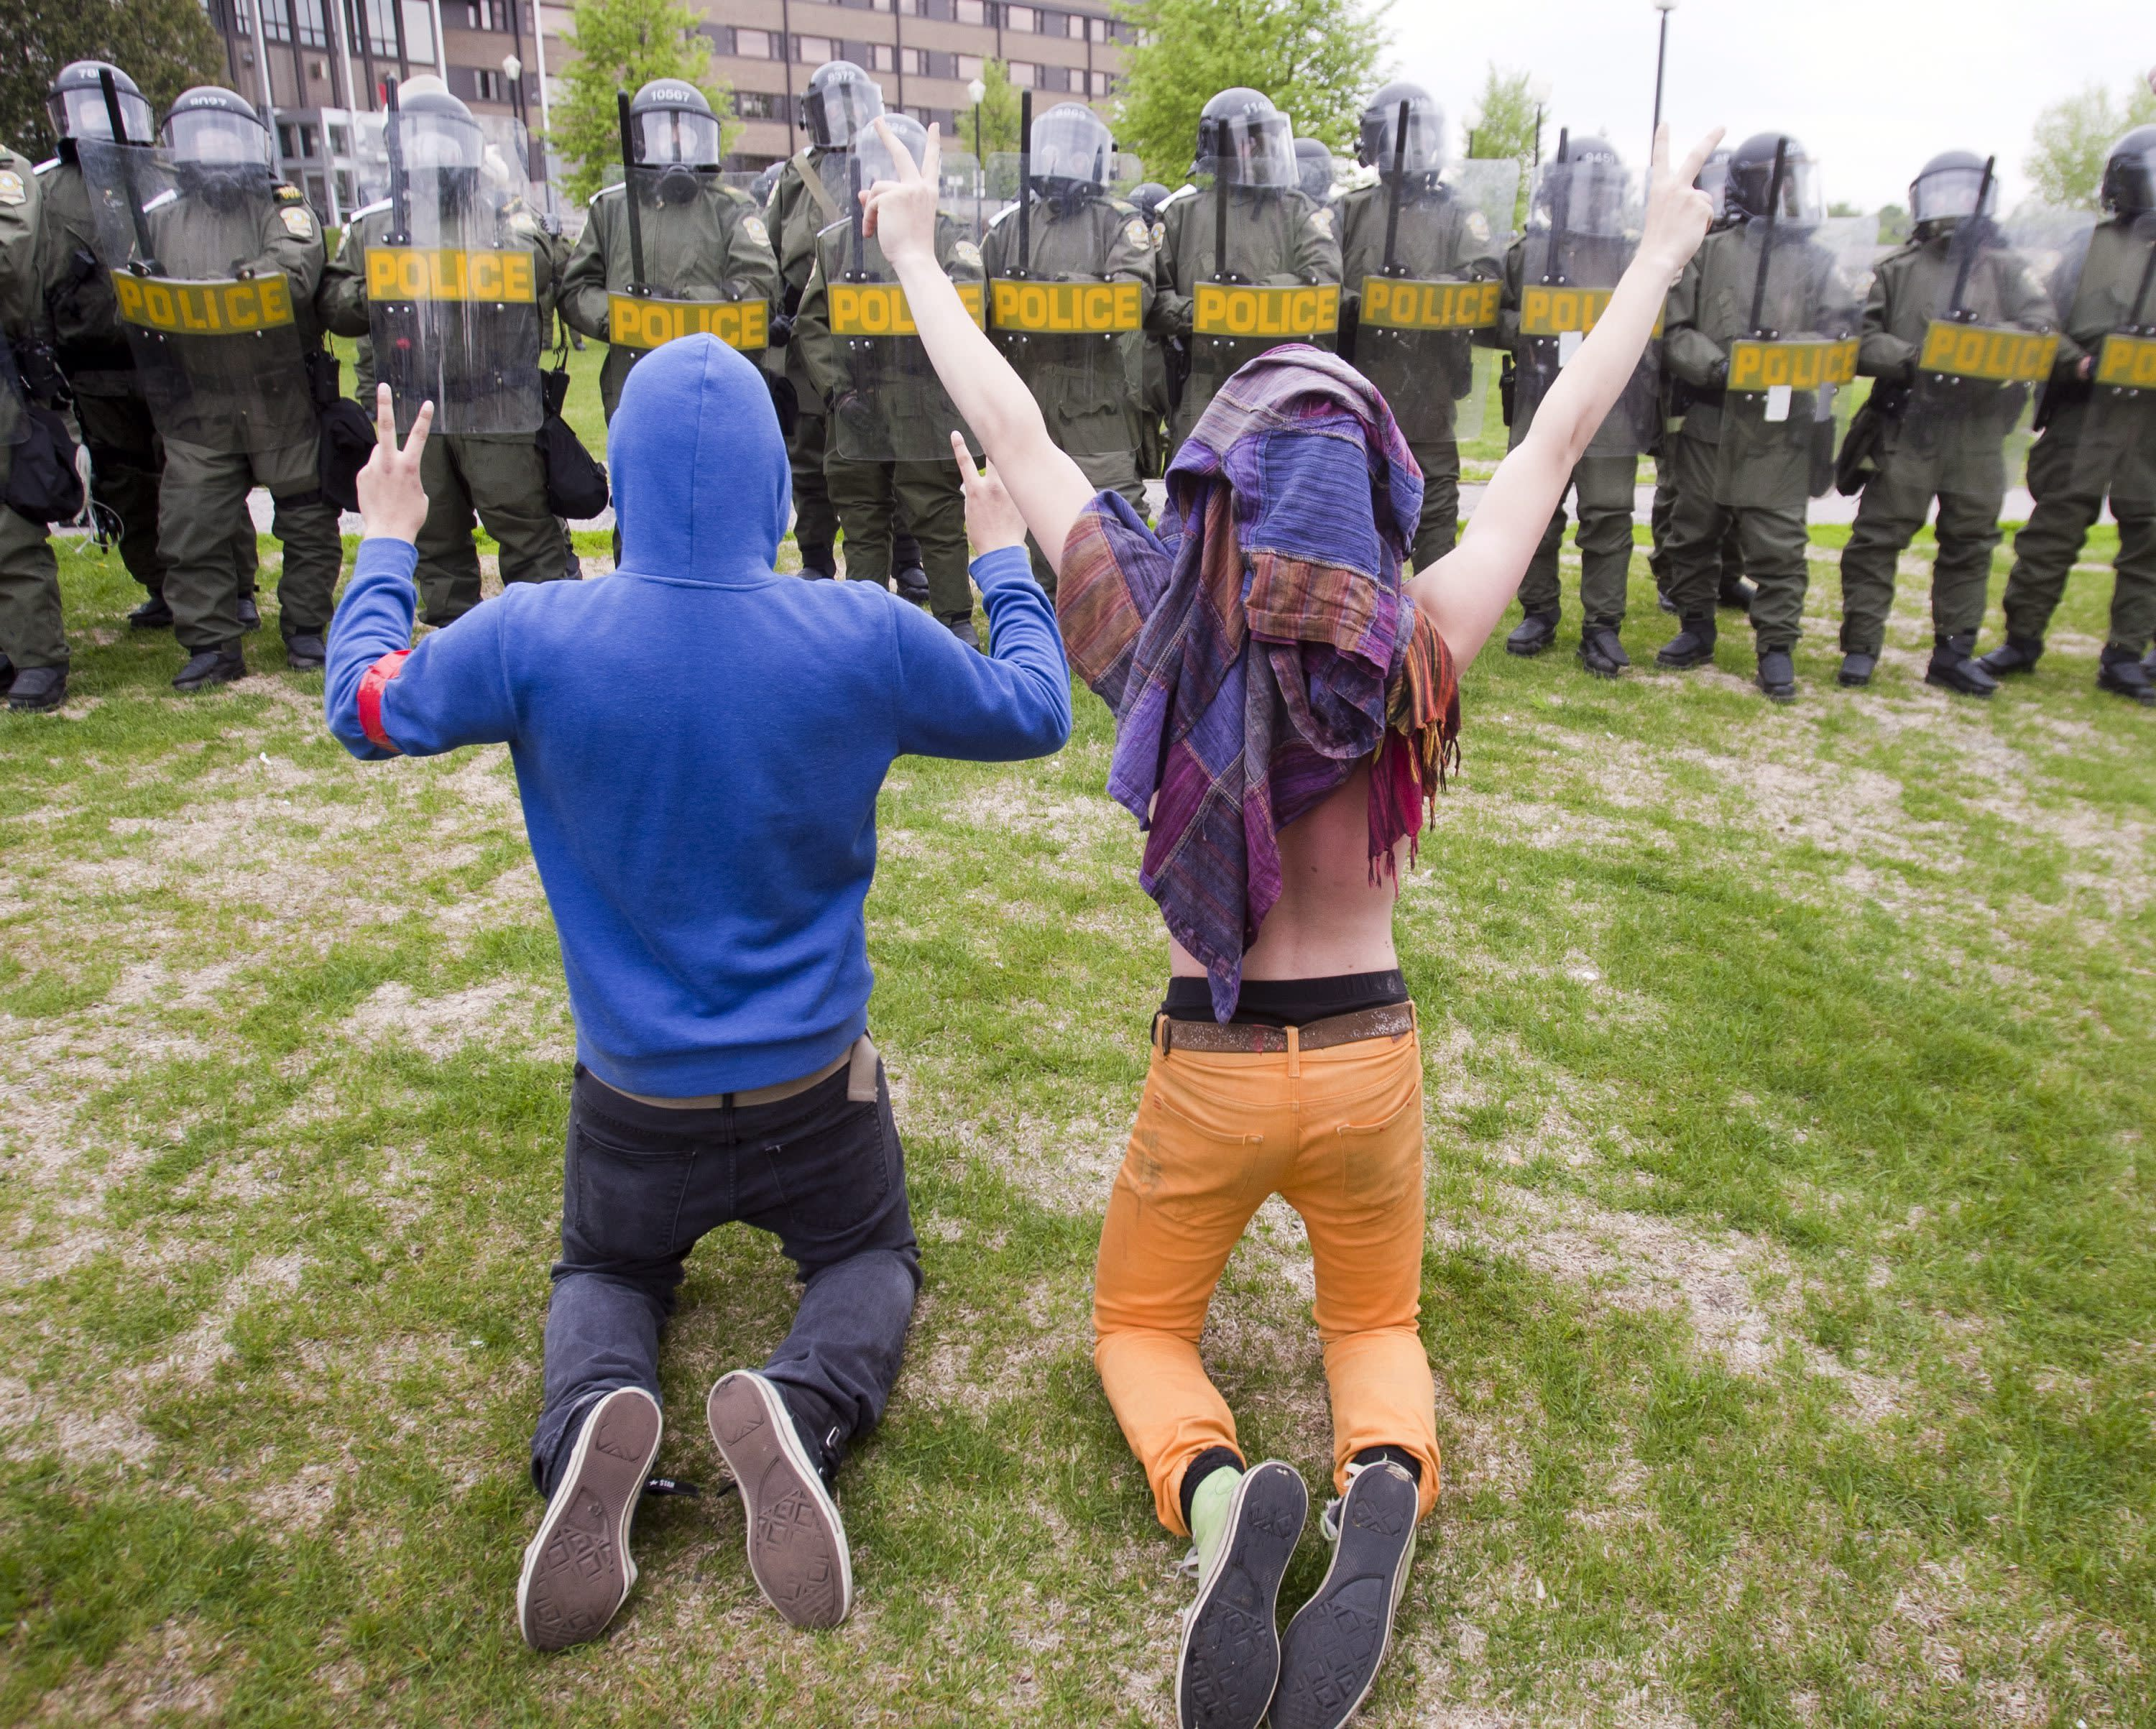 Photos: Quebec students protest tuition fee hikes - The